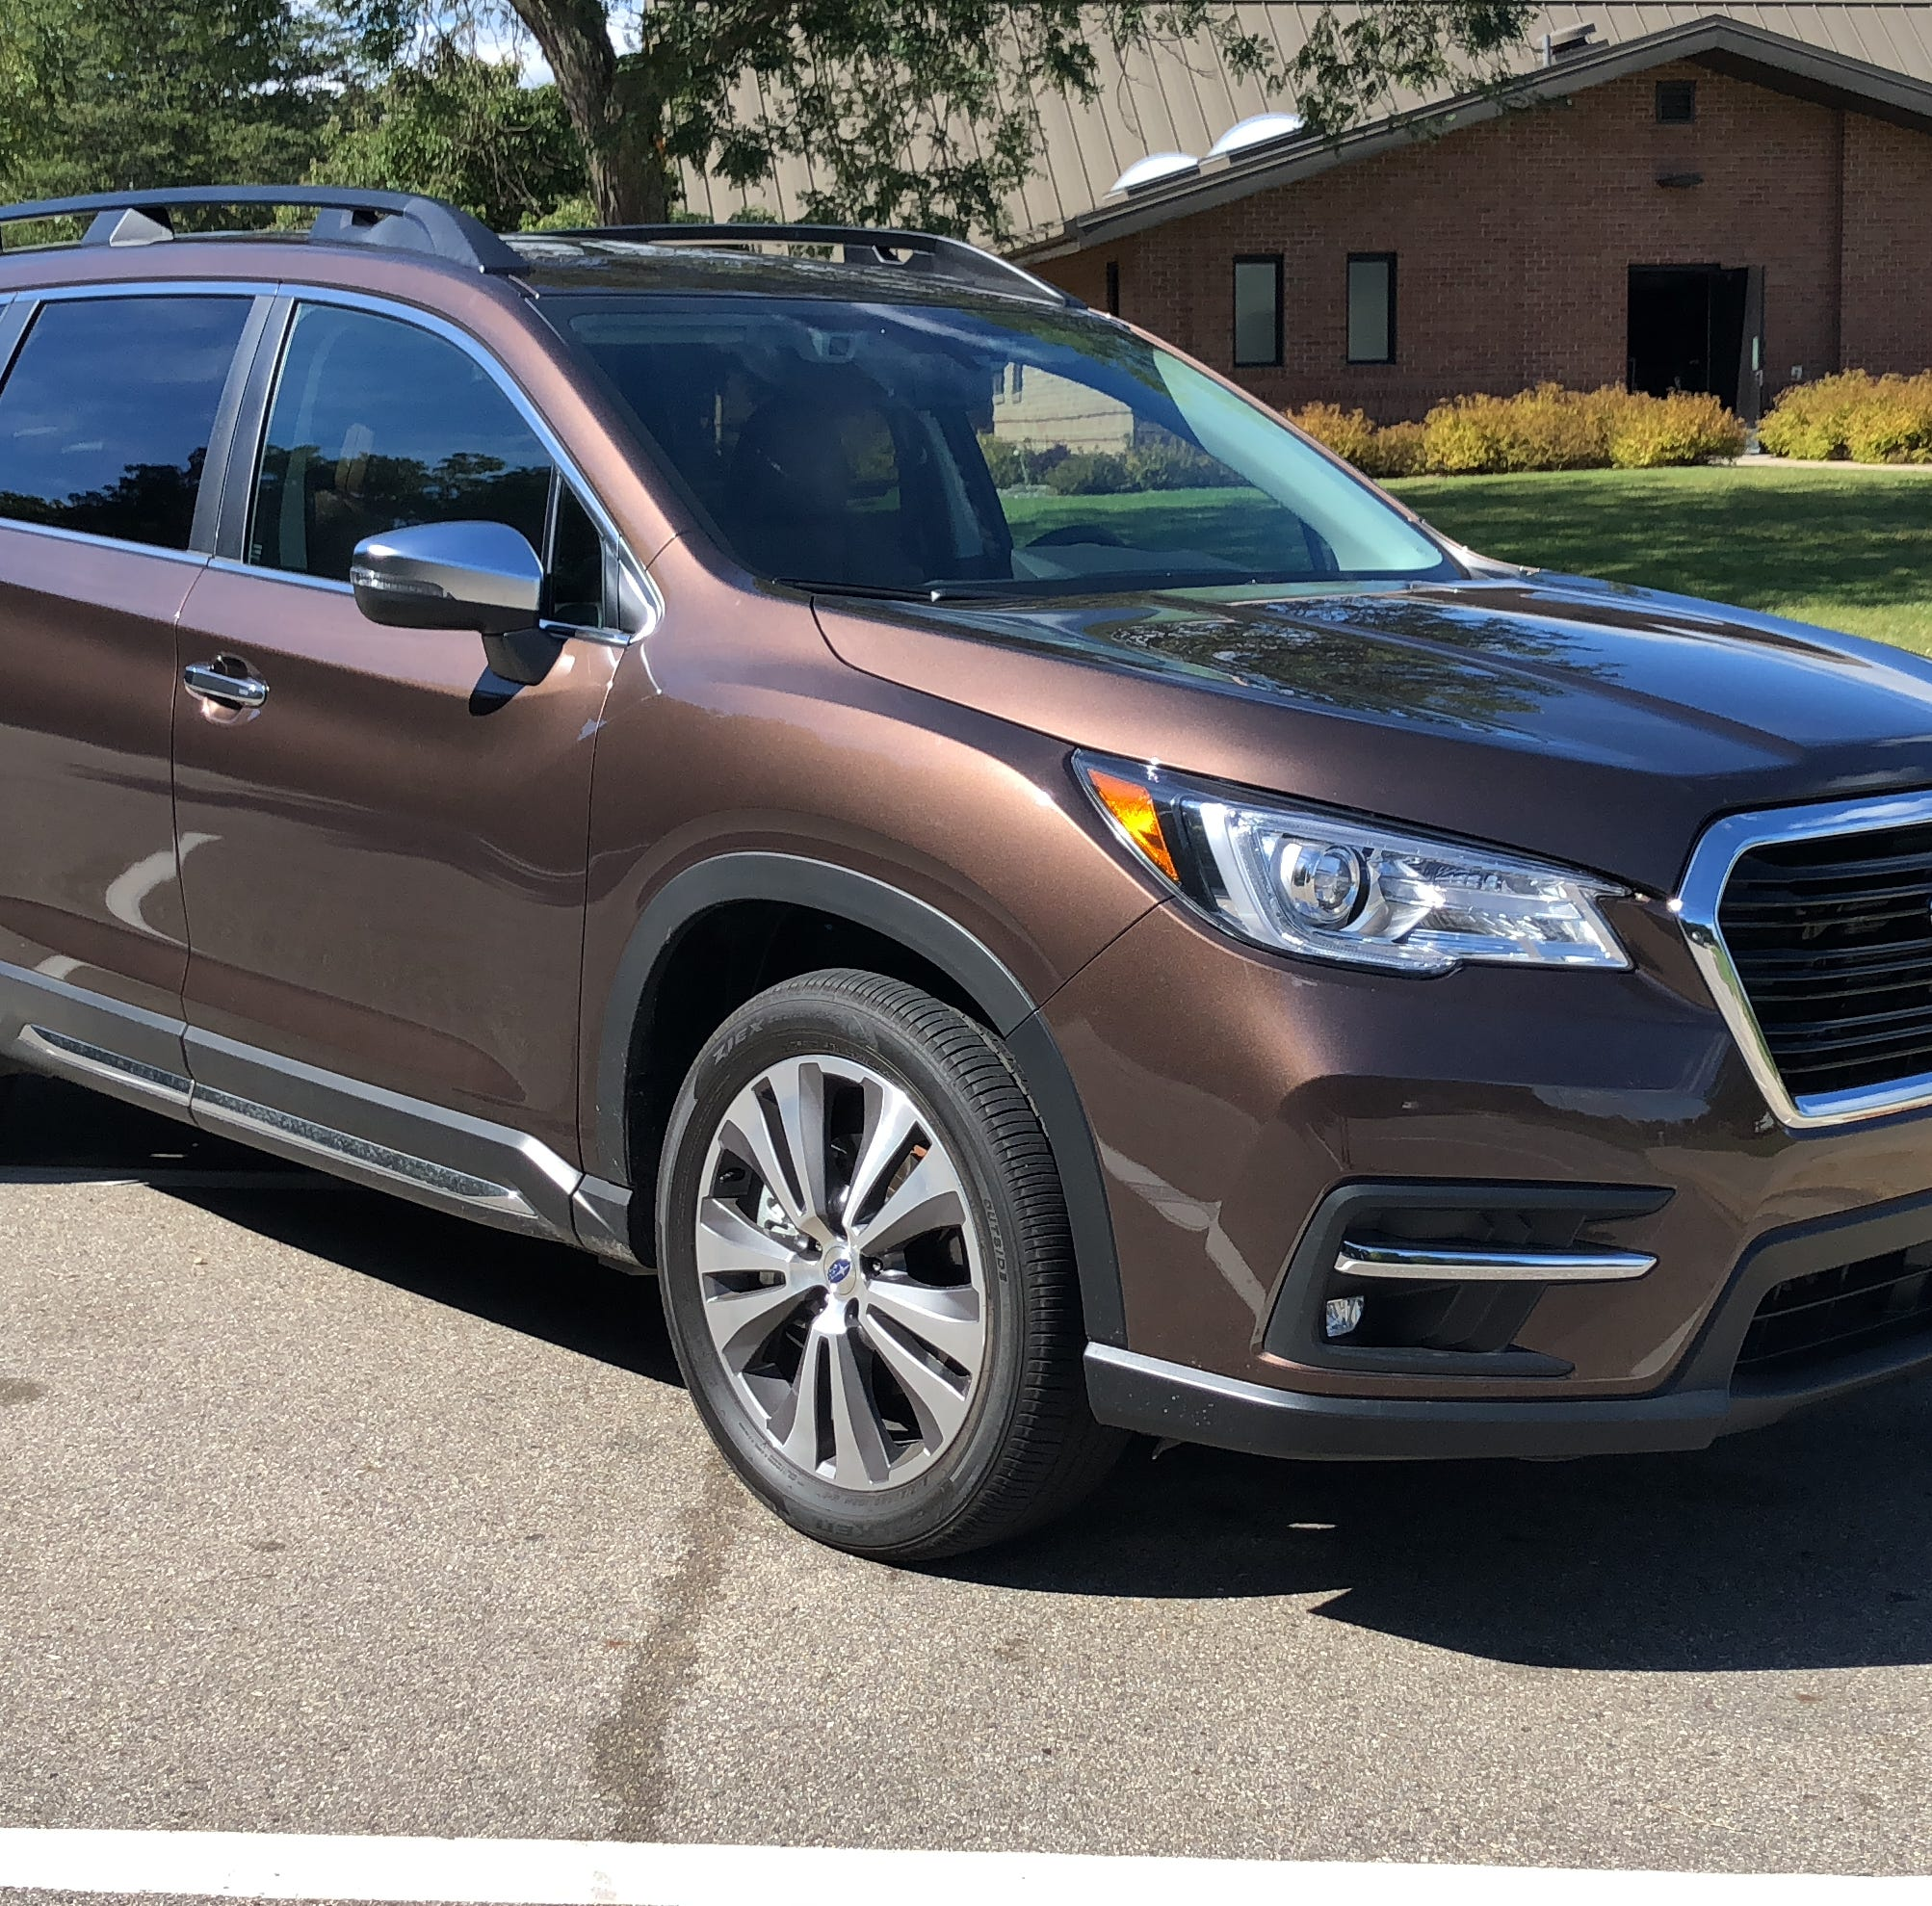 Review: 2019 Ascent is the Subaru families have been waiting for